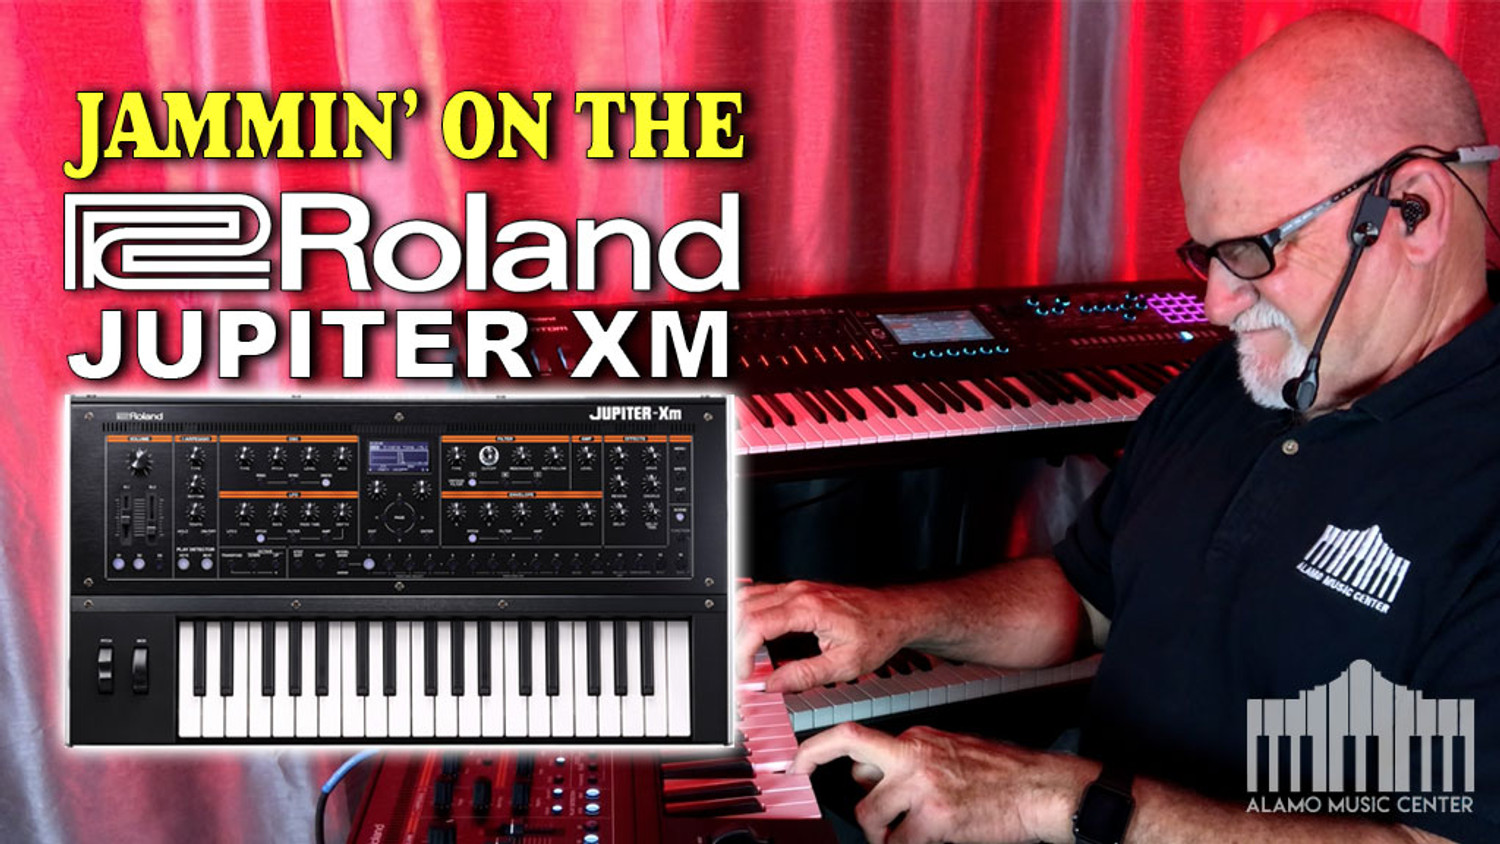 Full Review of the Roland Jupiter XM Synthesizer